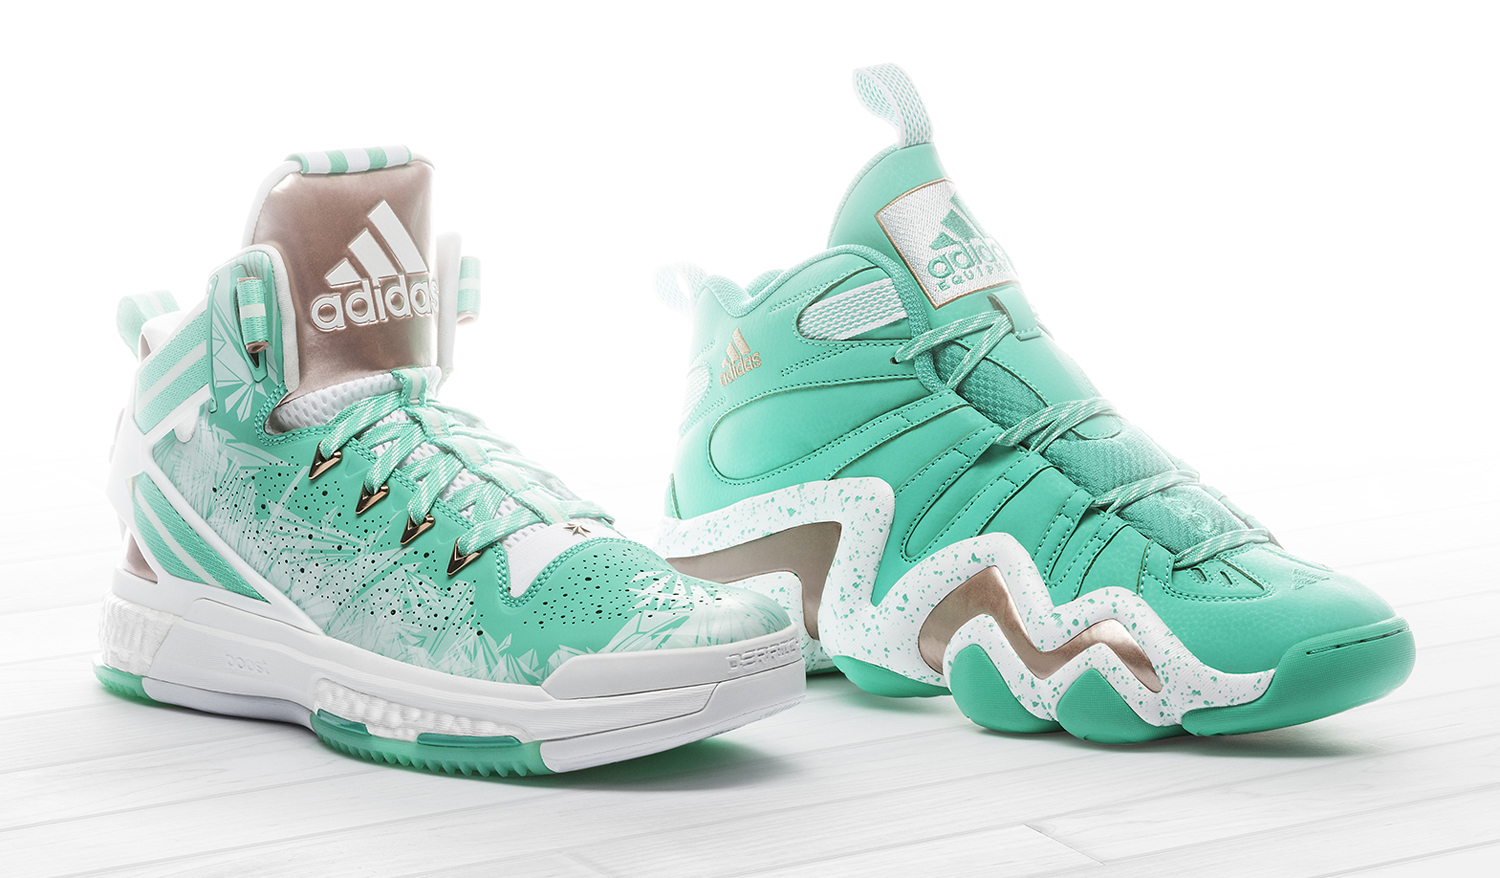 new product 4cbca cc5b4 Adidas Athletes Will Wear These Sneakers for the NBAs Christmas Games